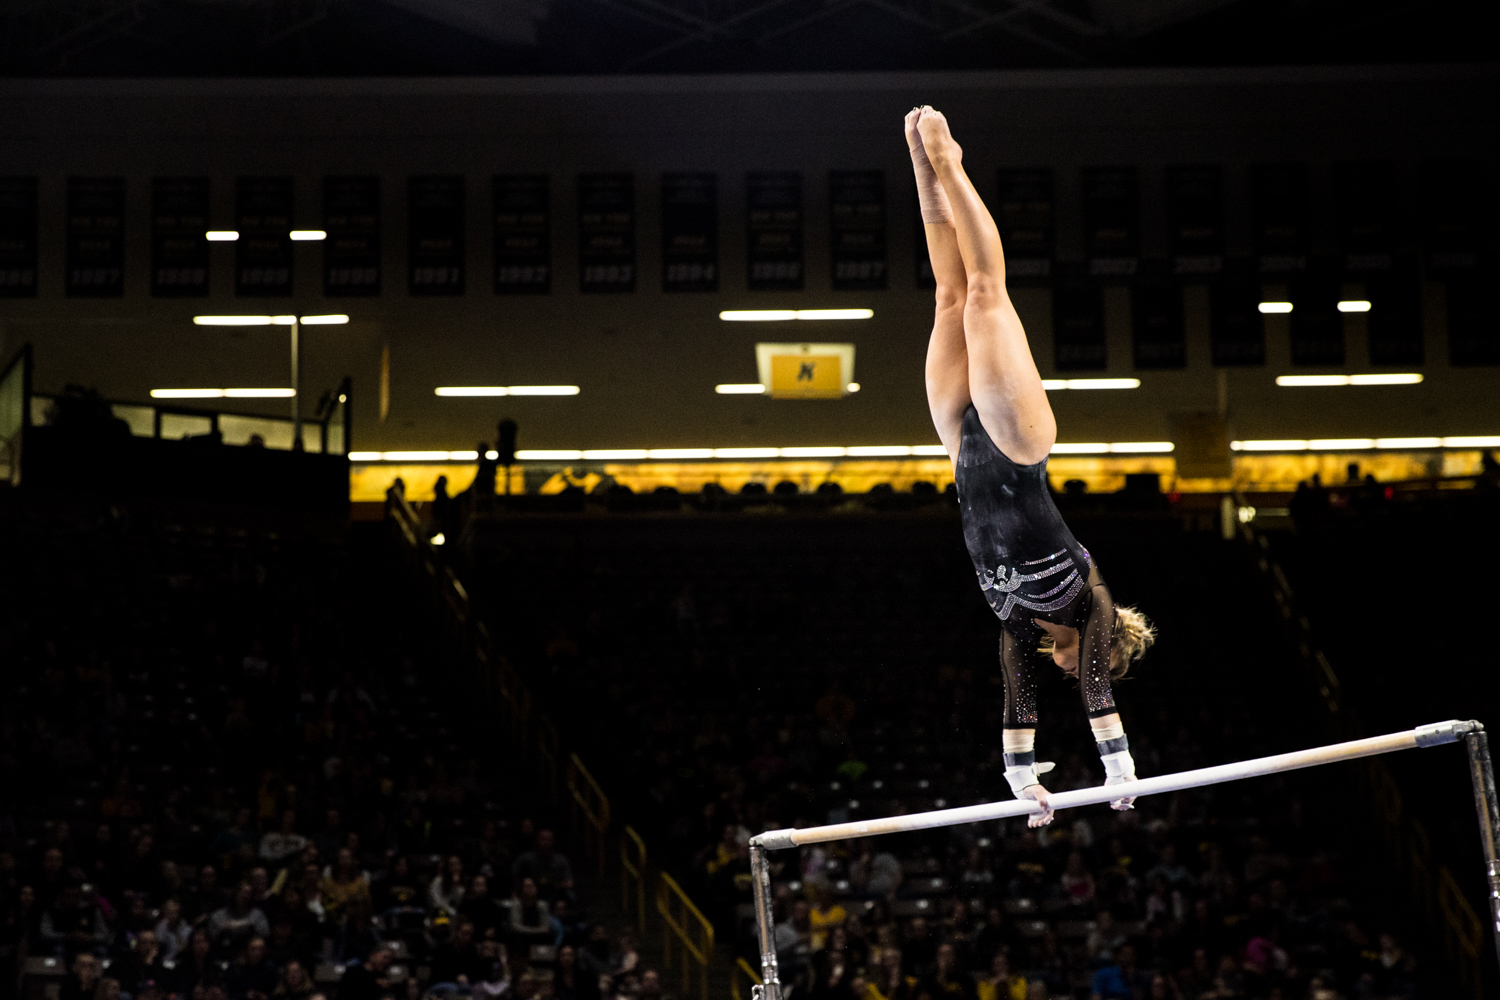 Iowa%27s+Maddie+Kampschroeder+competes+on+uneven+bars+during+a+women%27s+gymnastics+meet+between+Iowa+and+Iowa+State+at+Carver-Hawkeye+Arena+on+Friday%2C+March+1%2C+2019.+Kampschroeder+scored+9.175+in+the+event.+The+Hawkeyes%2C+celebrating+senior+night%2C+fell+to+the+Cyclones%2C+196.275-196.250.